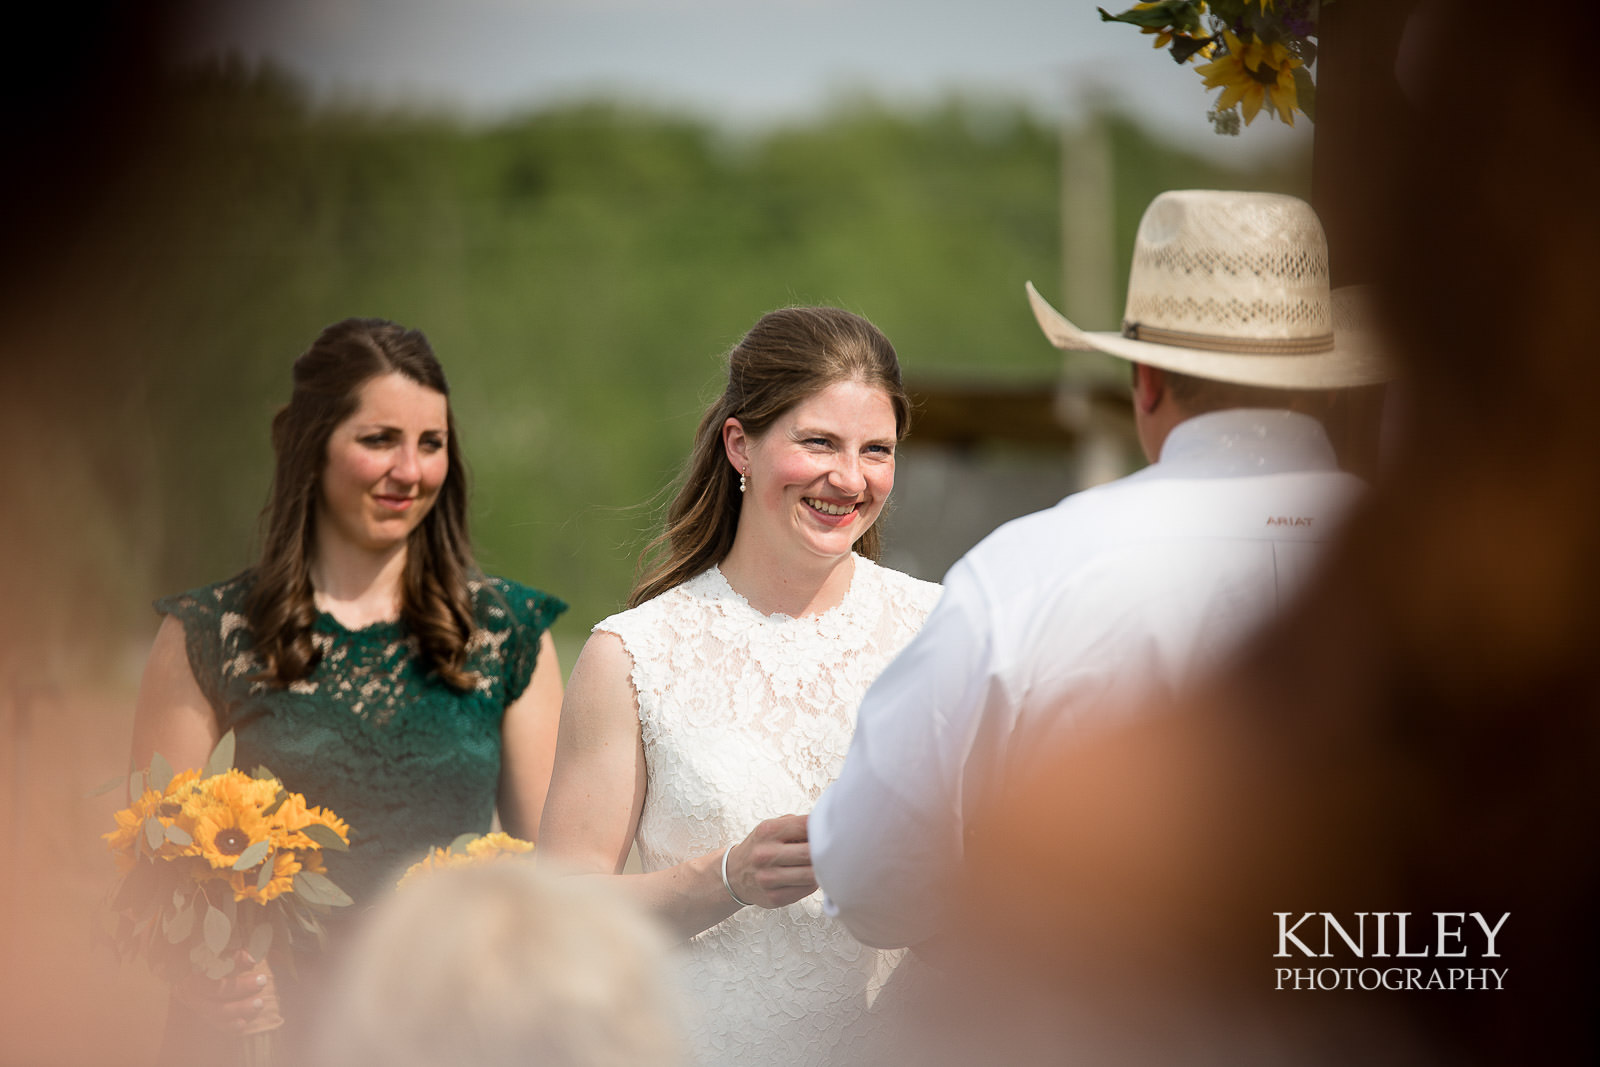 32-Western-New-York-farm-wedding-Kniley-Photography.jpg